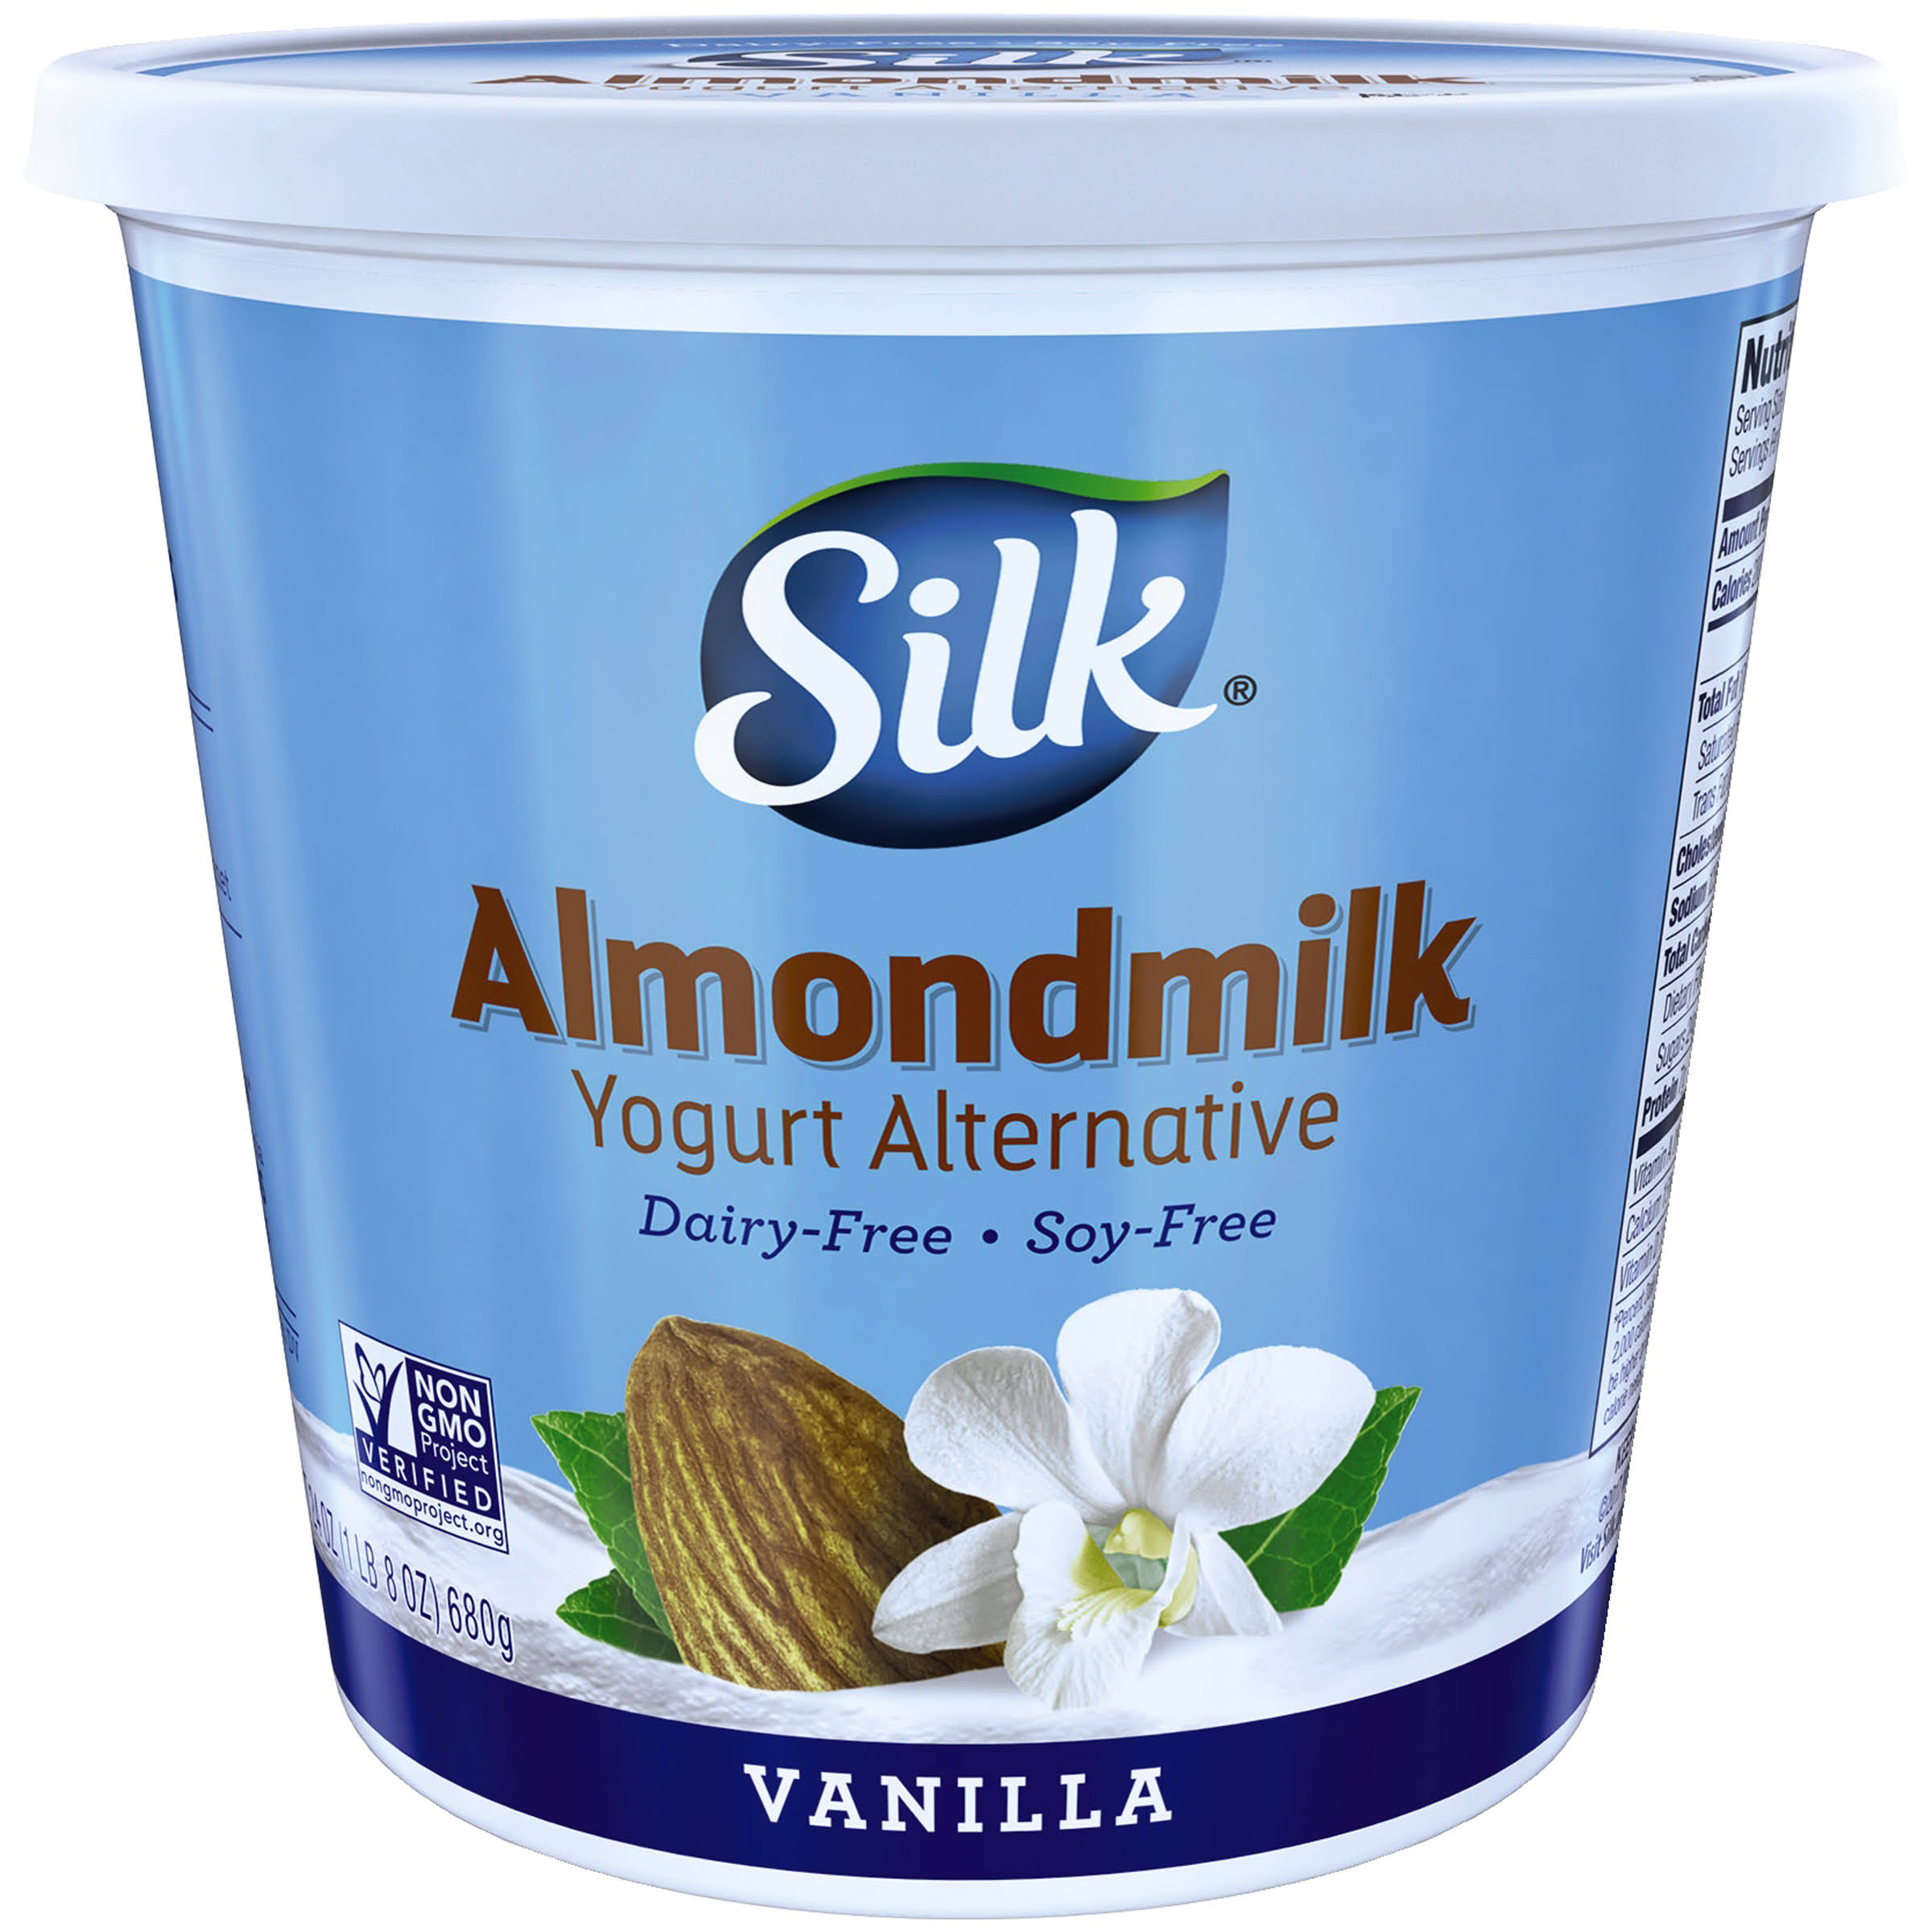 Silk Vanilla Almondmilk Yogurt Alternative